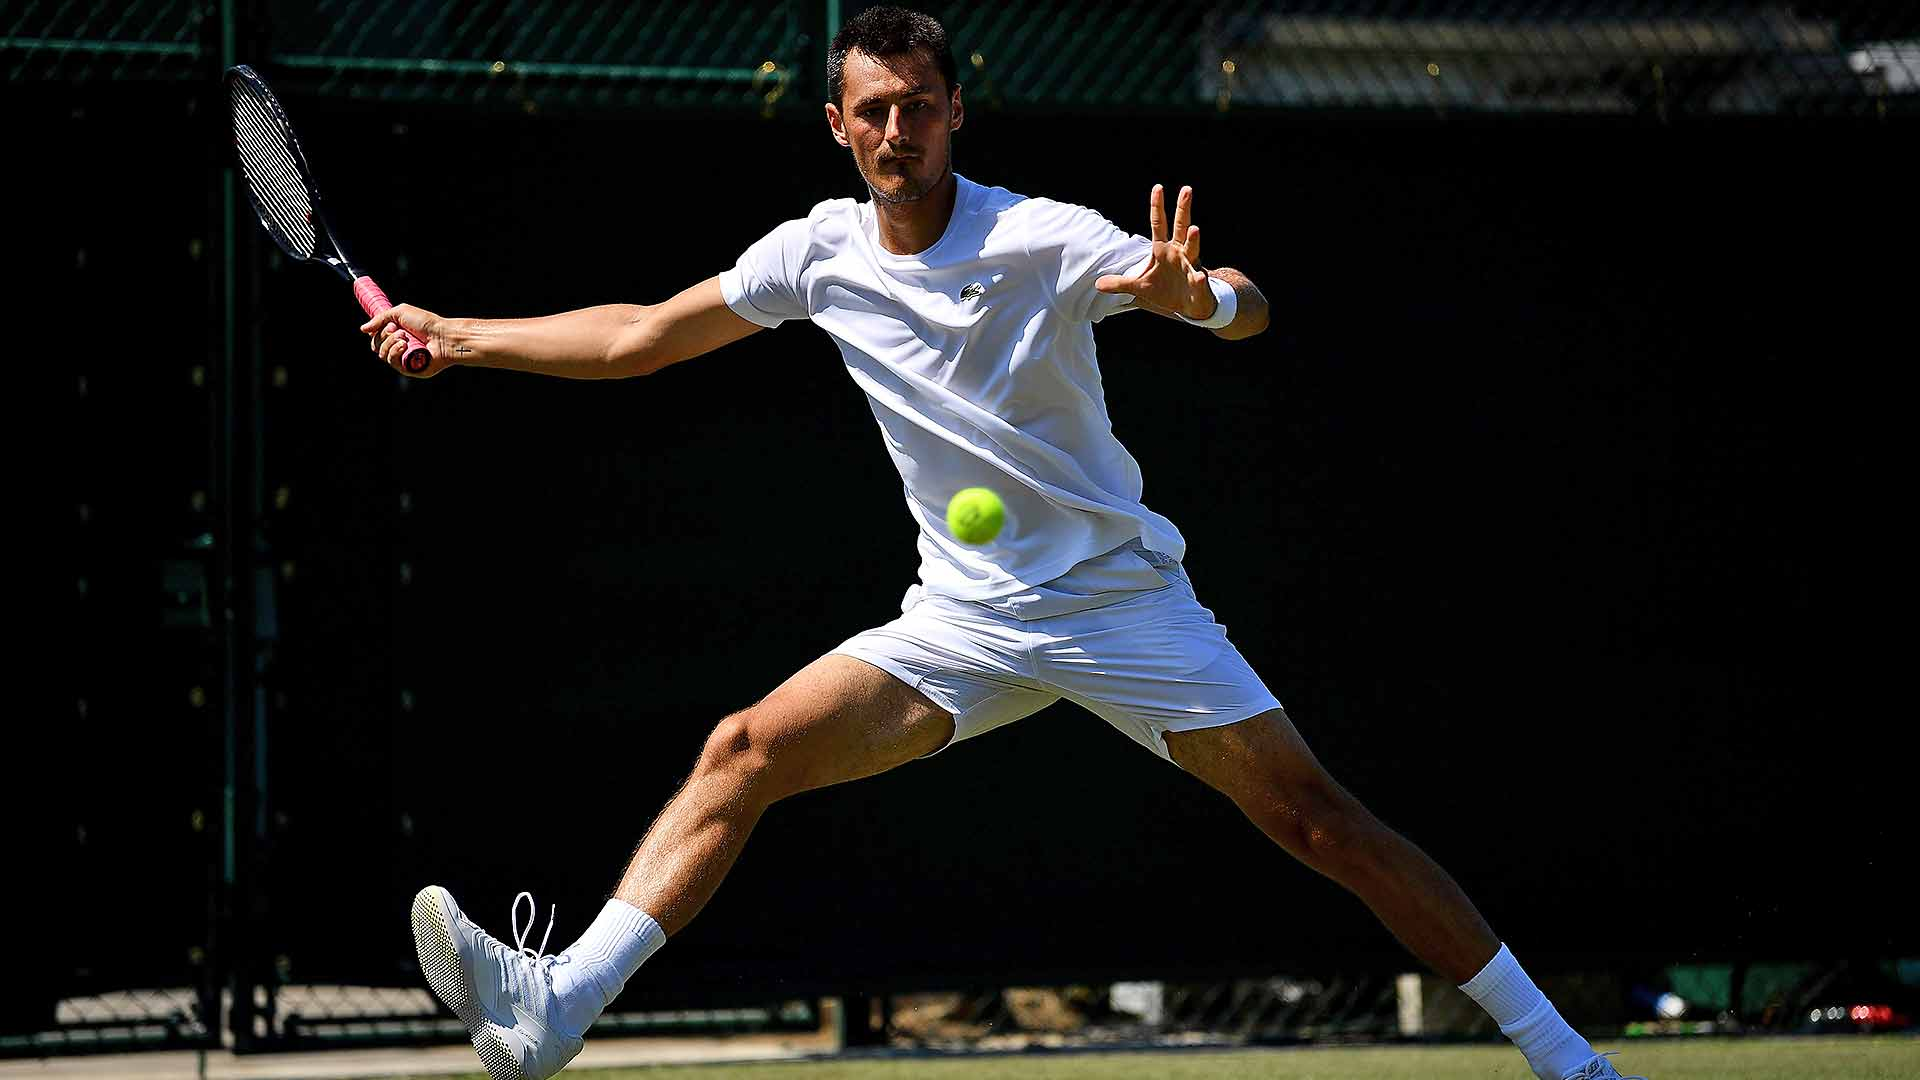 ���� Tomic close to returning to #Wimbledon main draw.  ➡️ https://t.co/NlLJQC1H9t #ATP https://t.co/k9C0kZESnQ